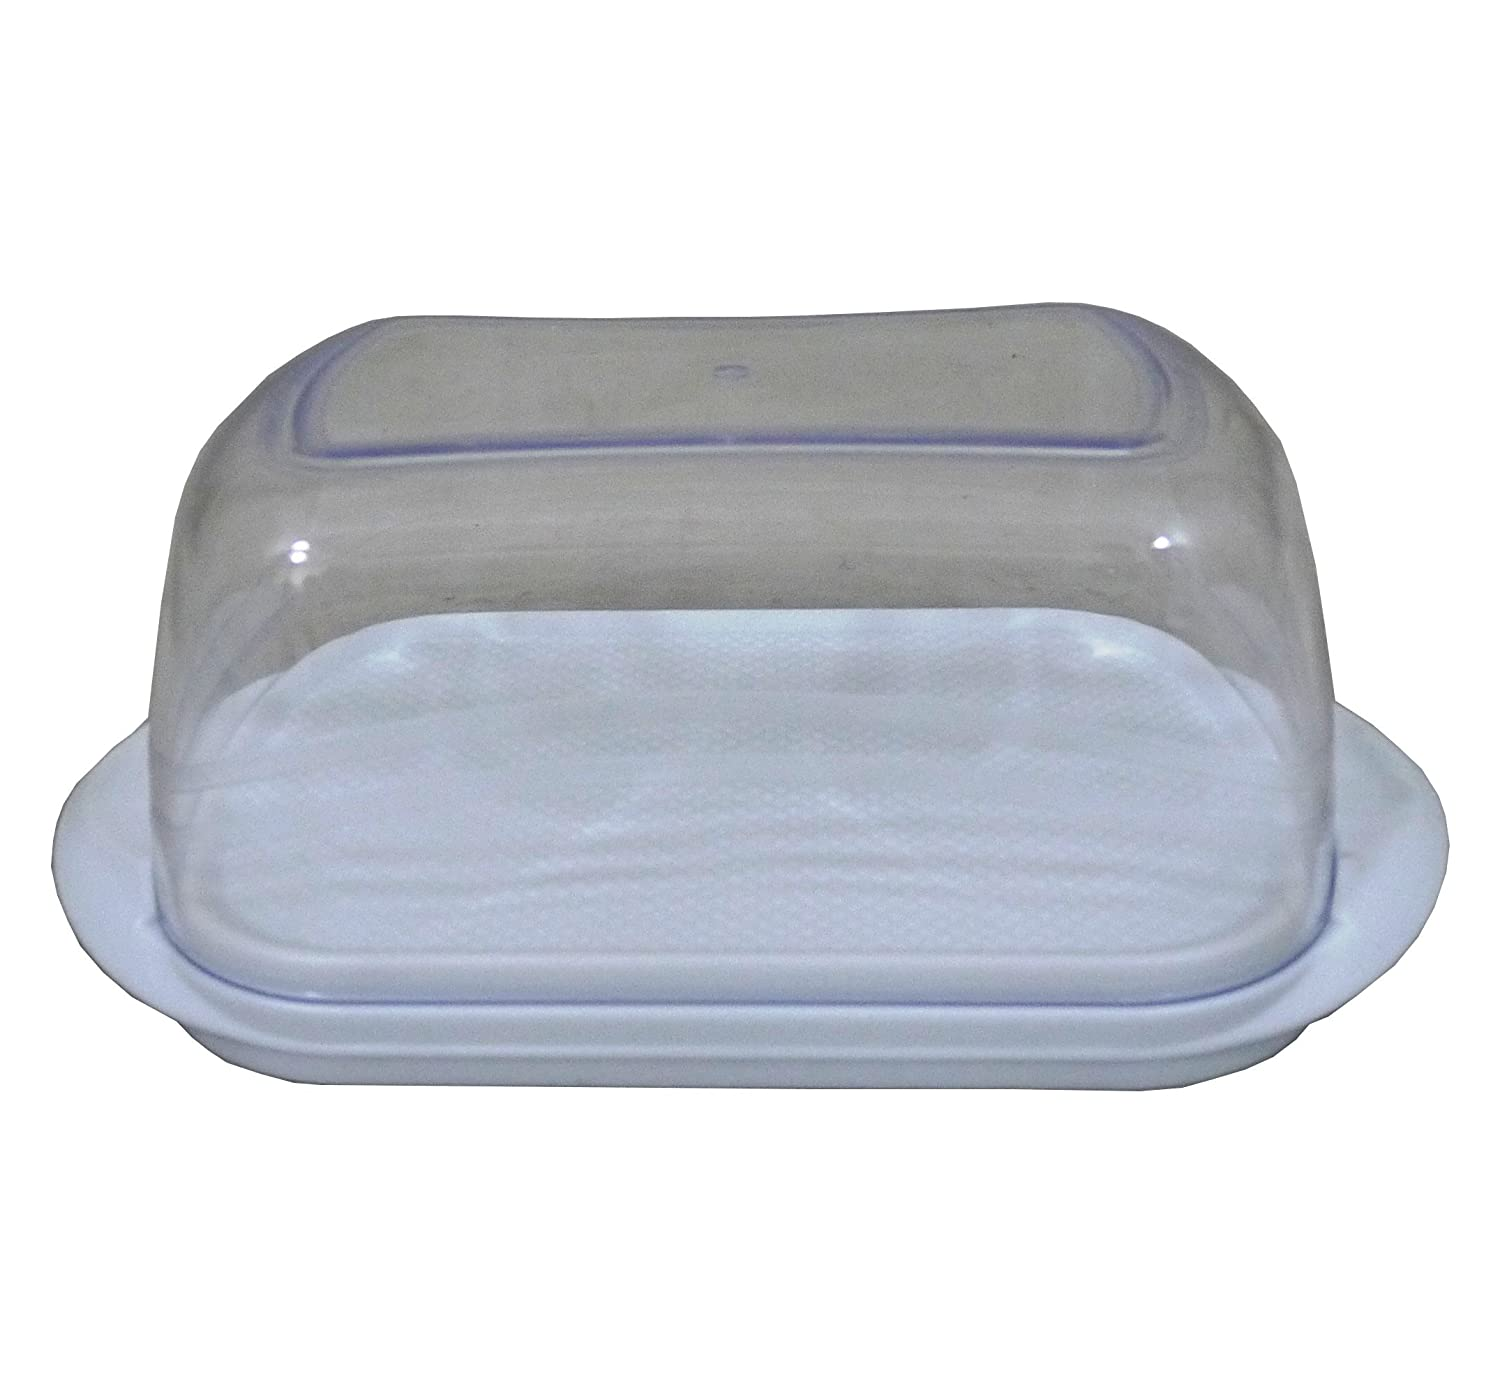 High Quality White Plastic Butter Dish Box With Clear Lid Hobby